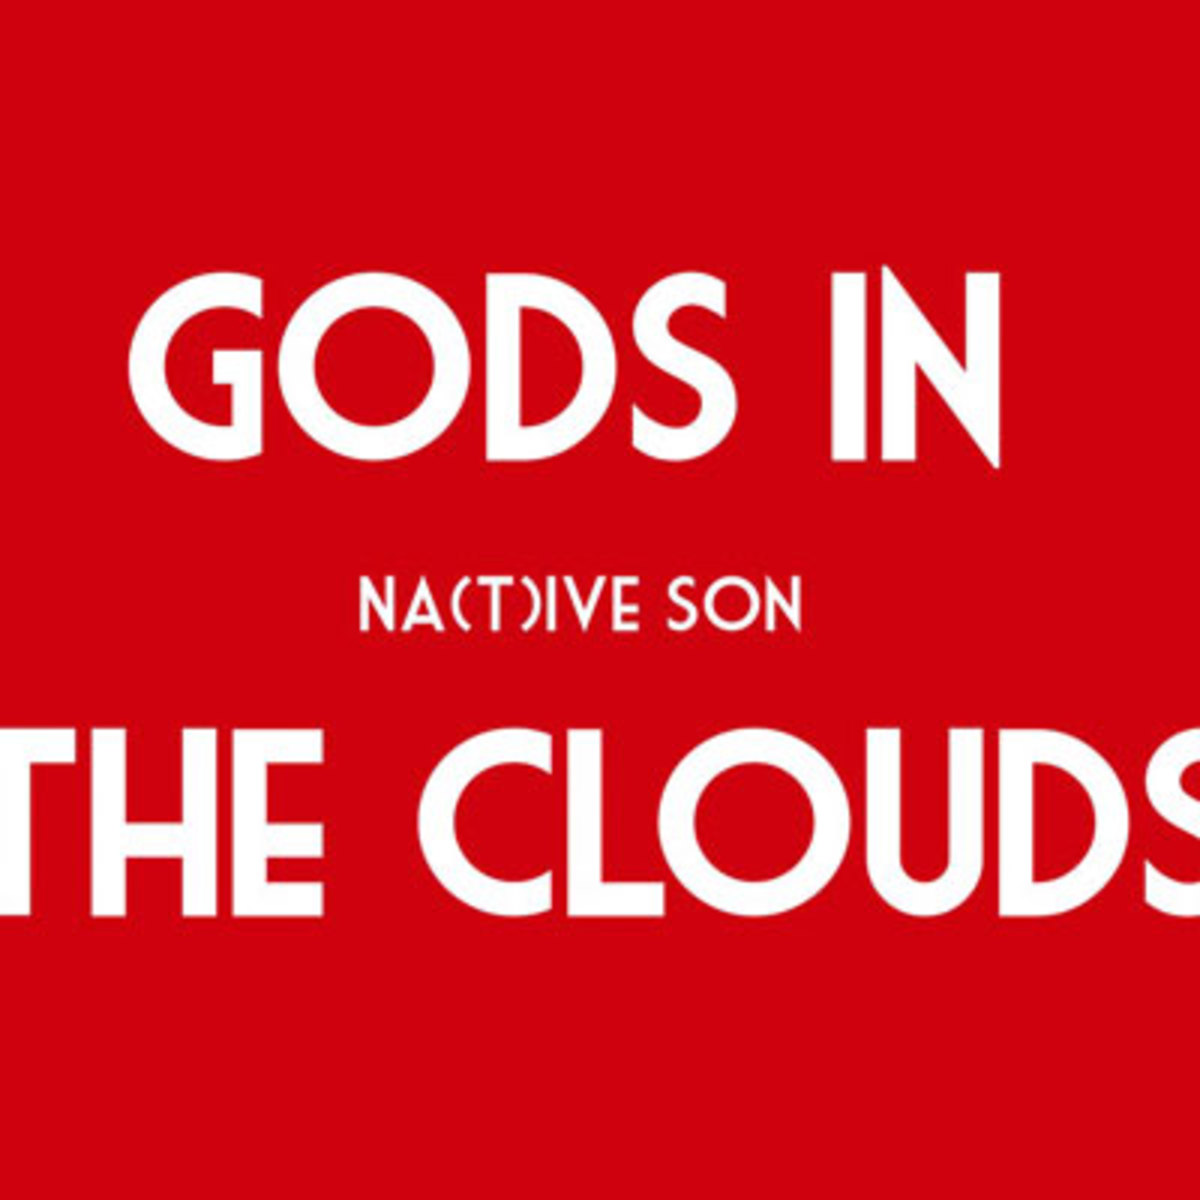 nativesons-godsintheclouds.jpg